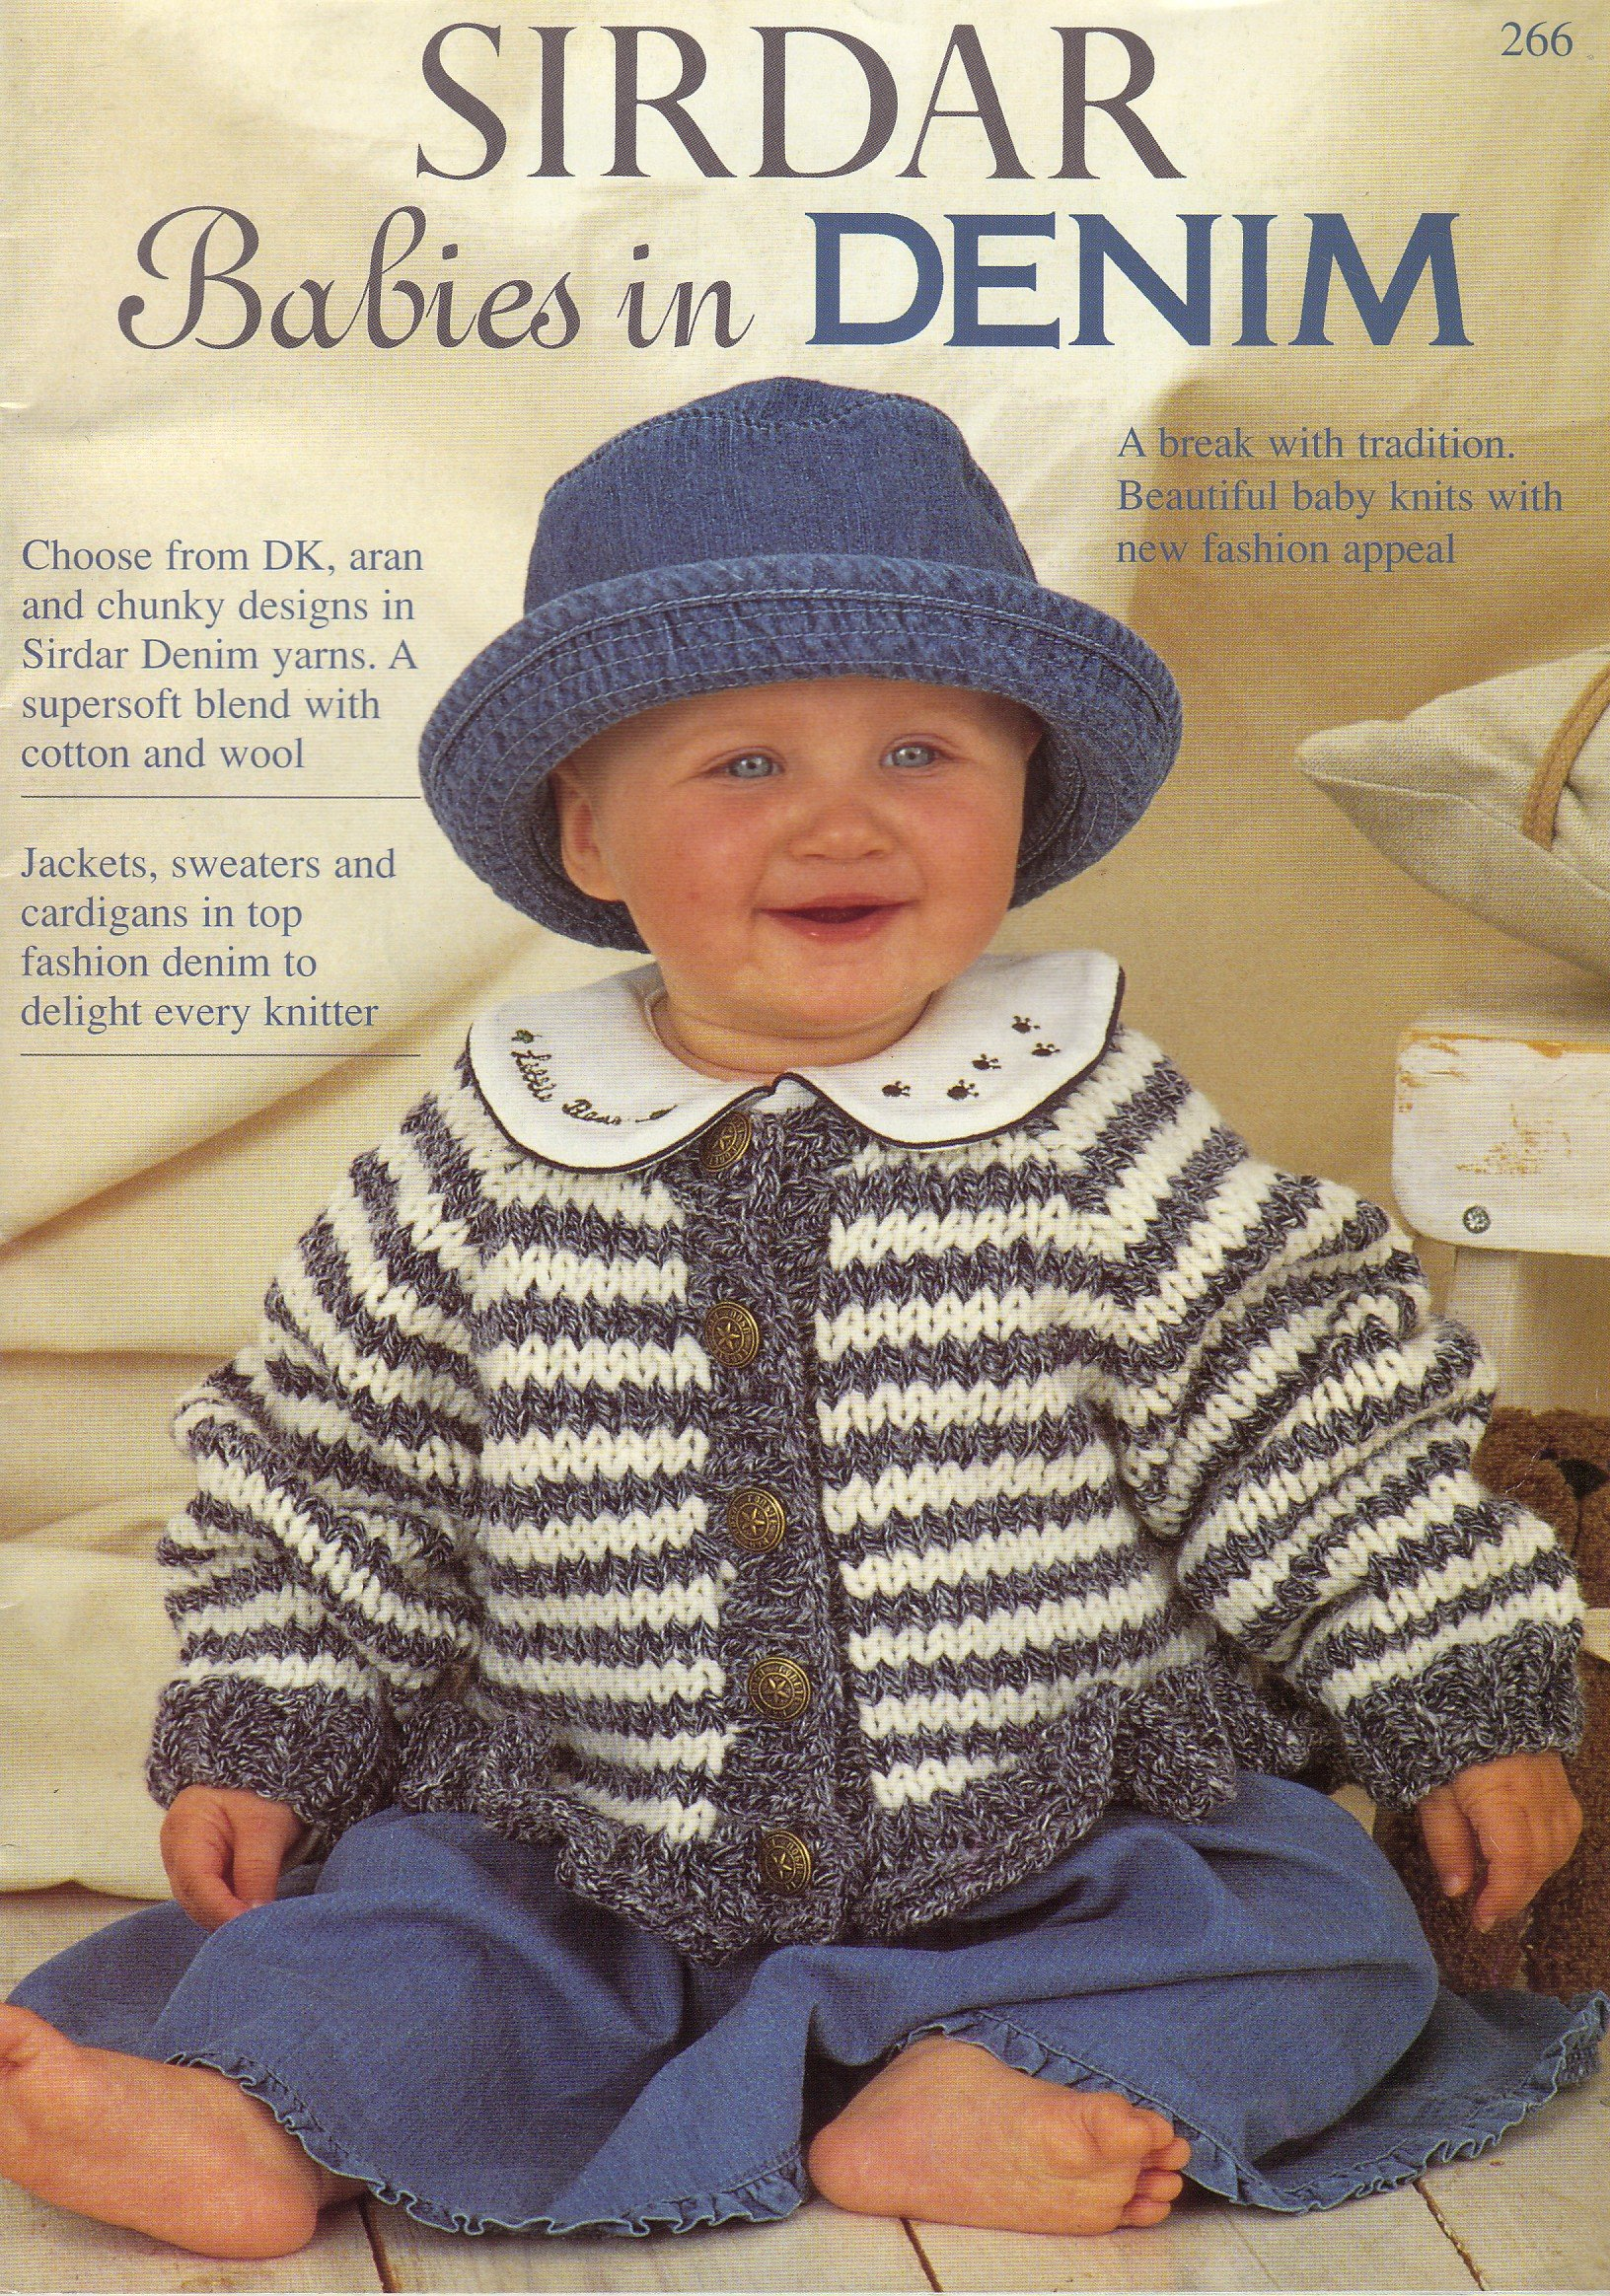 Sirdar babies in denim babys and childrens 10 knitting pattern sirdar babies in denim babys and childrens 10 knitting pattern booklet cardigans sweaters jackets tunic hat 7 sizes from birth to age 8years bankloansurffo Image collections